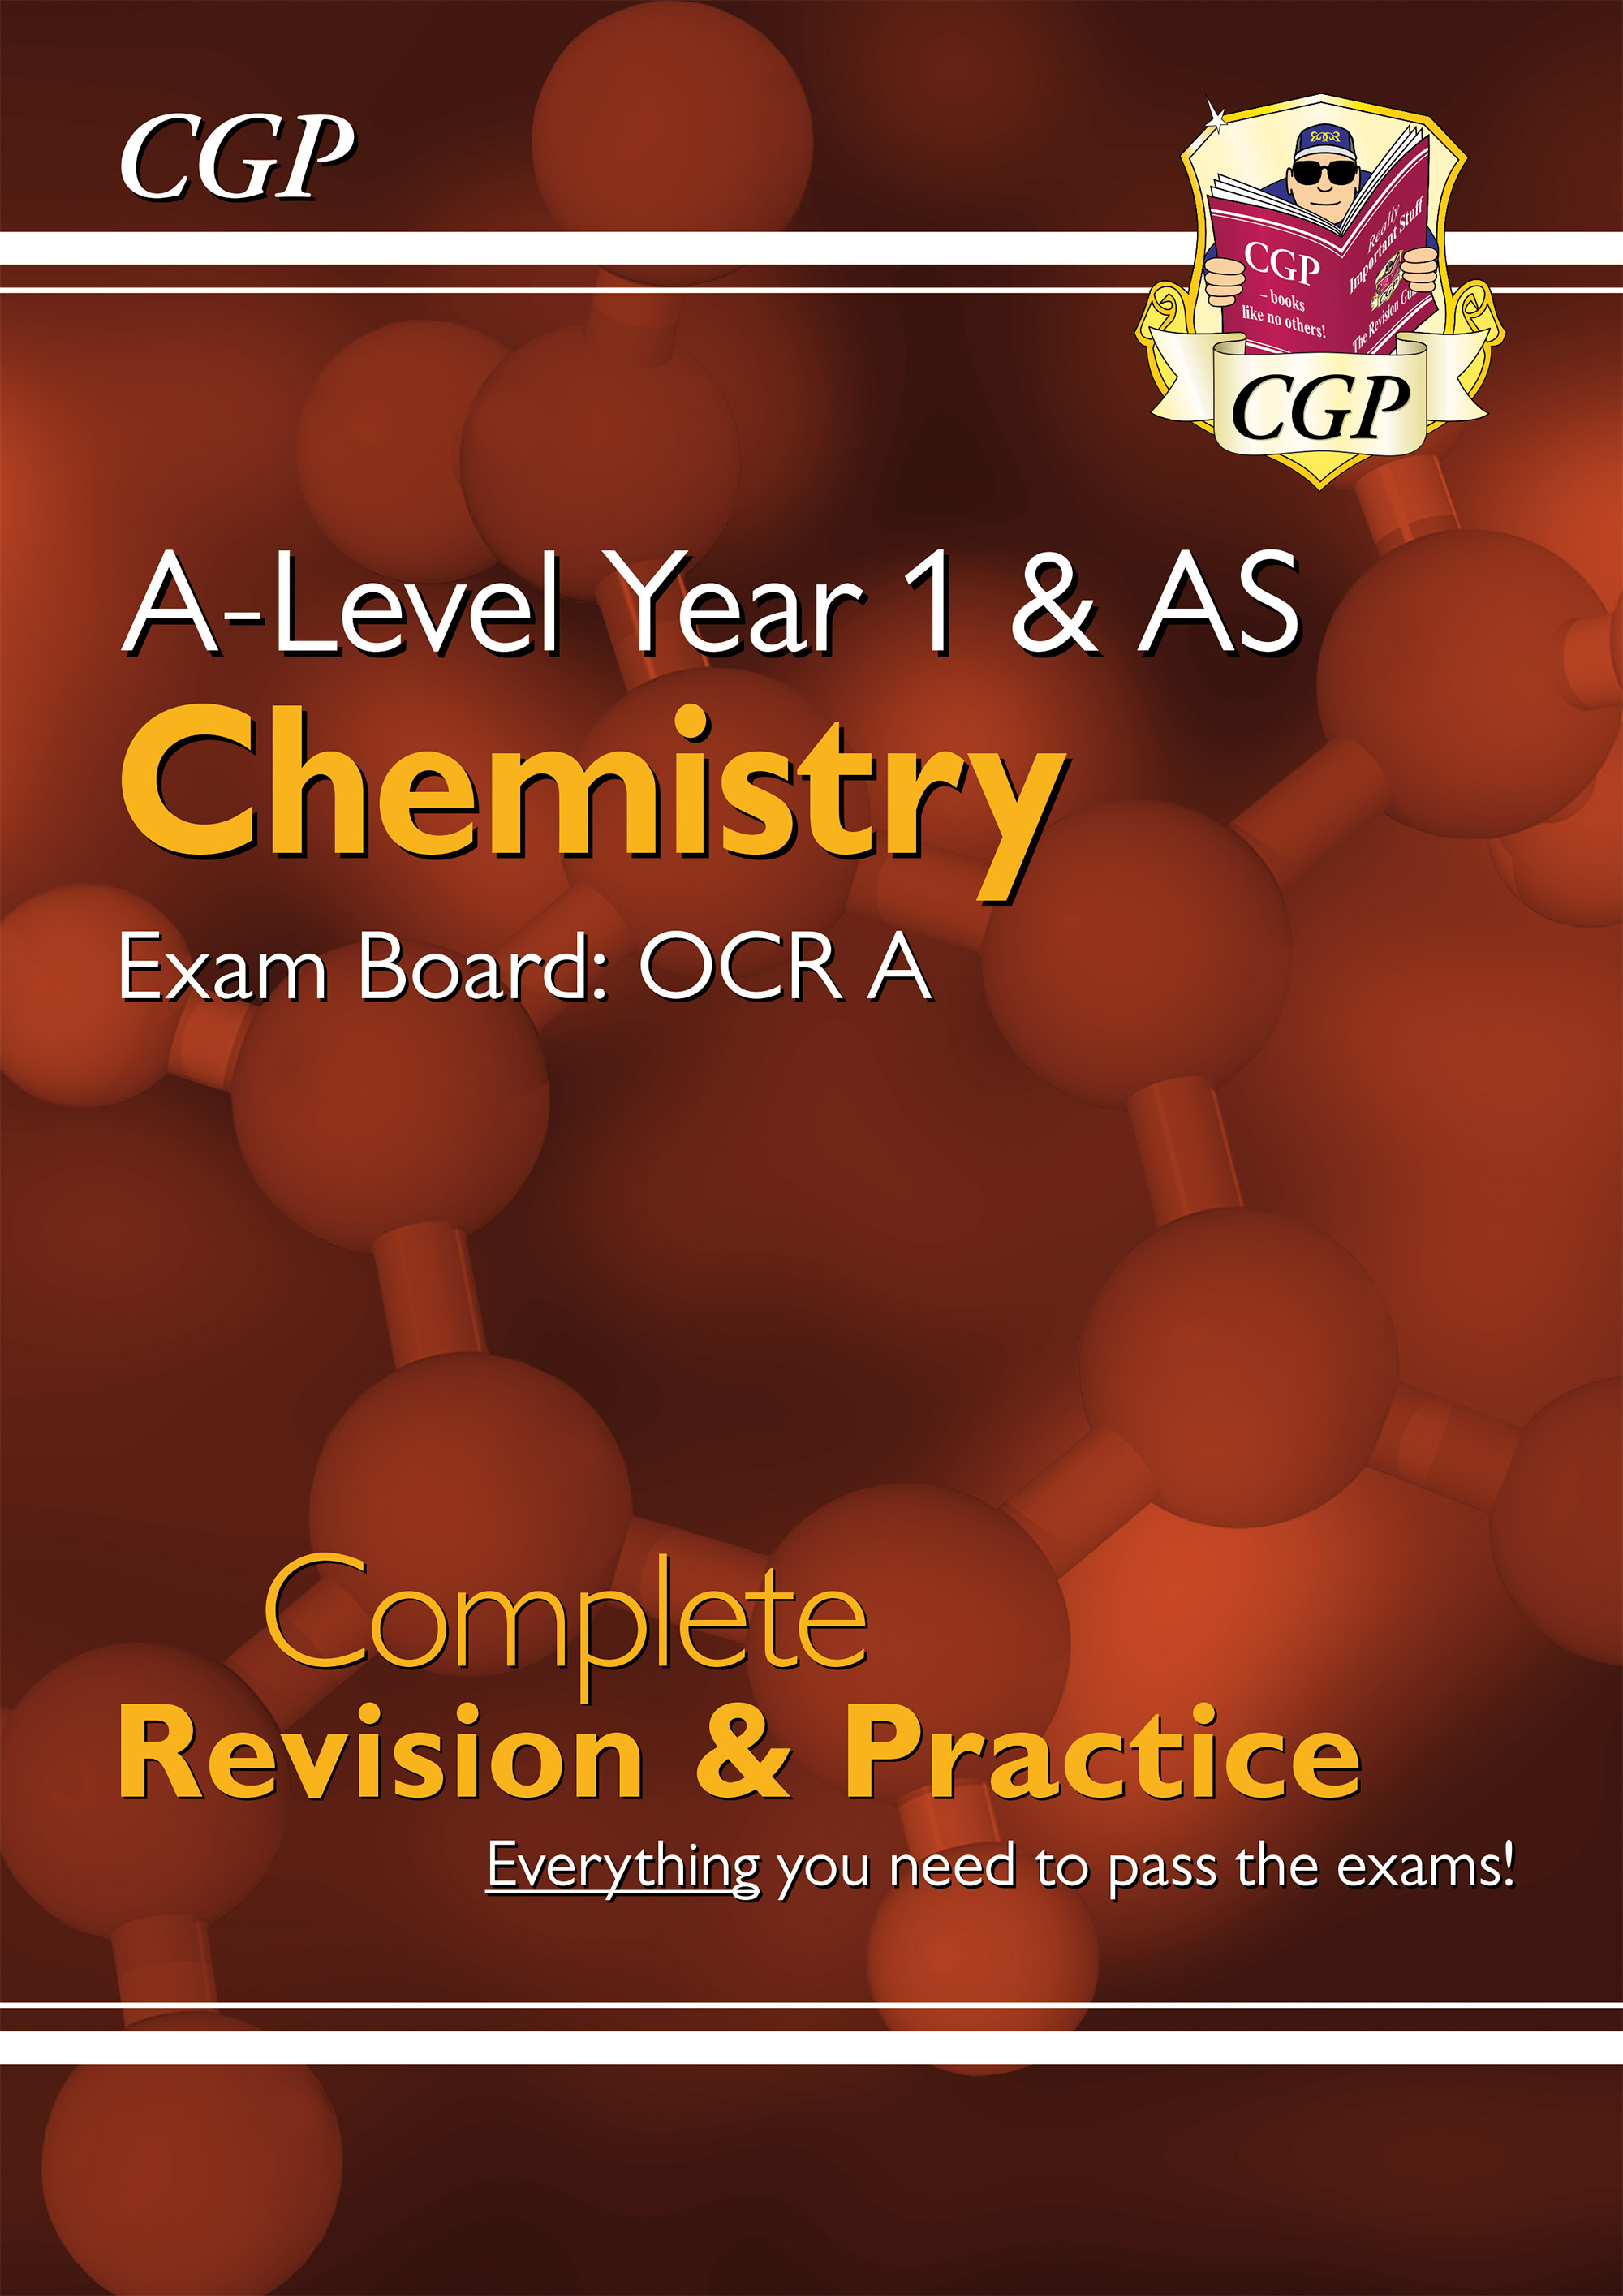 CRAR54DK - New A-Level Chemistry: OCR A Year 1 & AS Complete Revision & Practice